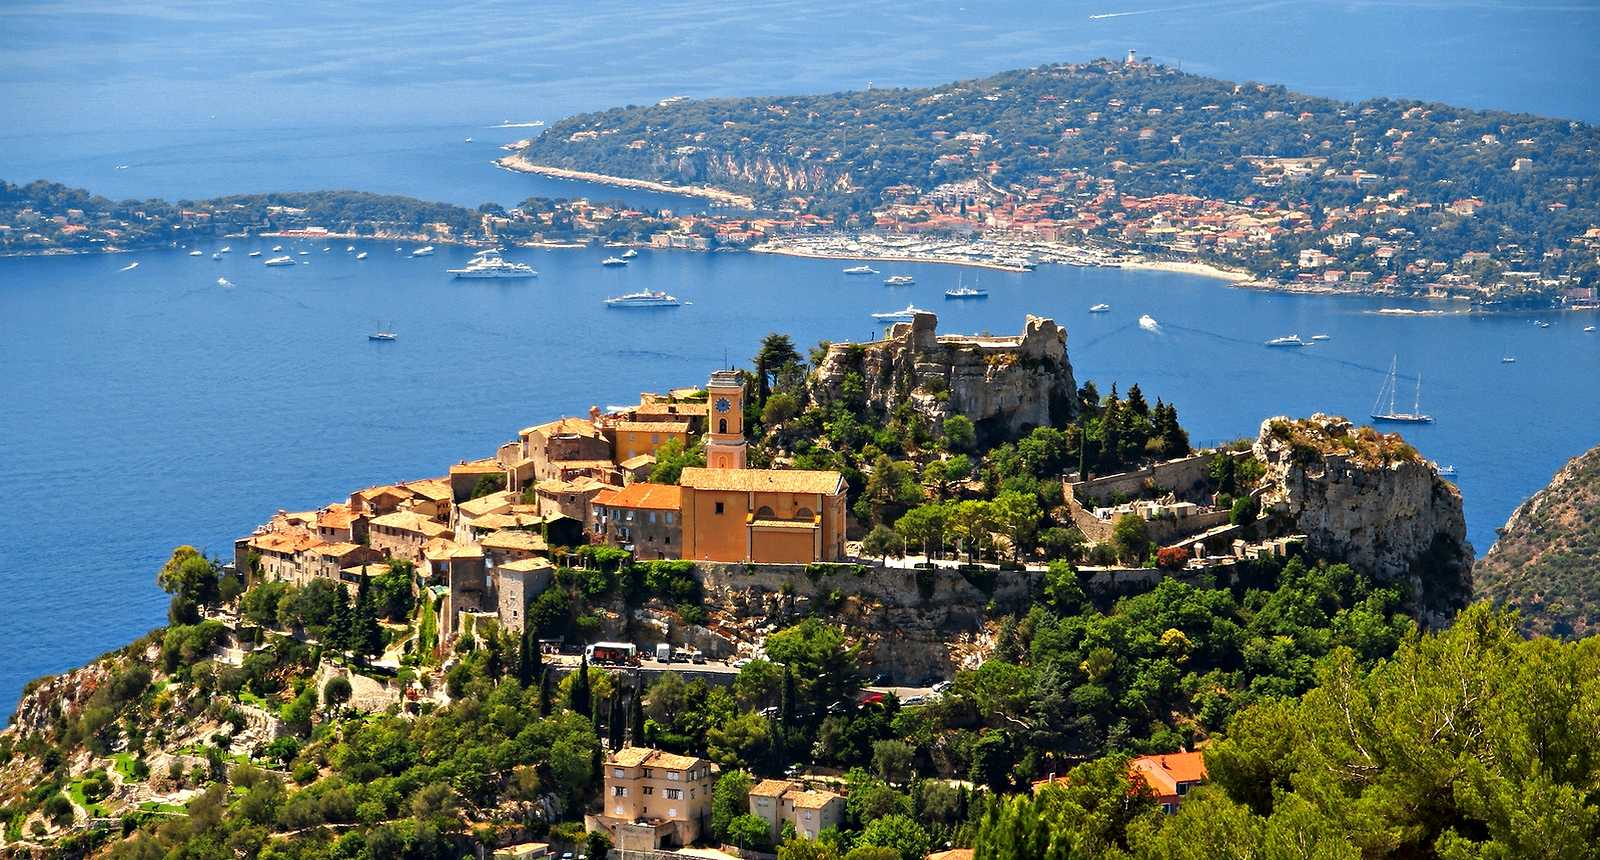 Eze is a commune of the Alpes-Maritimes département, in France, not far from the town of Nice. Eze village, dans les Alpes maritimes